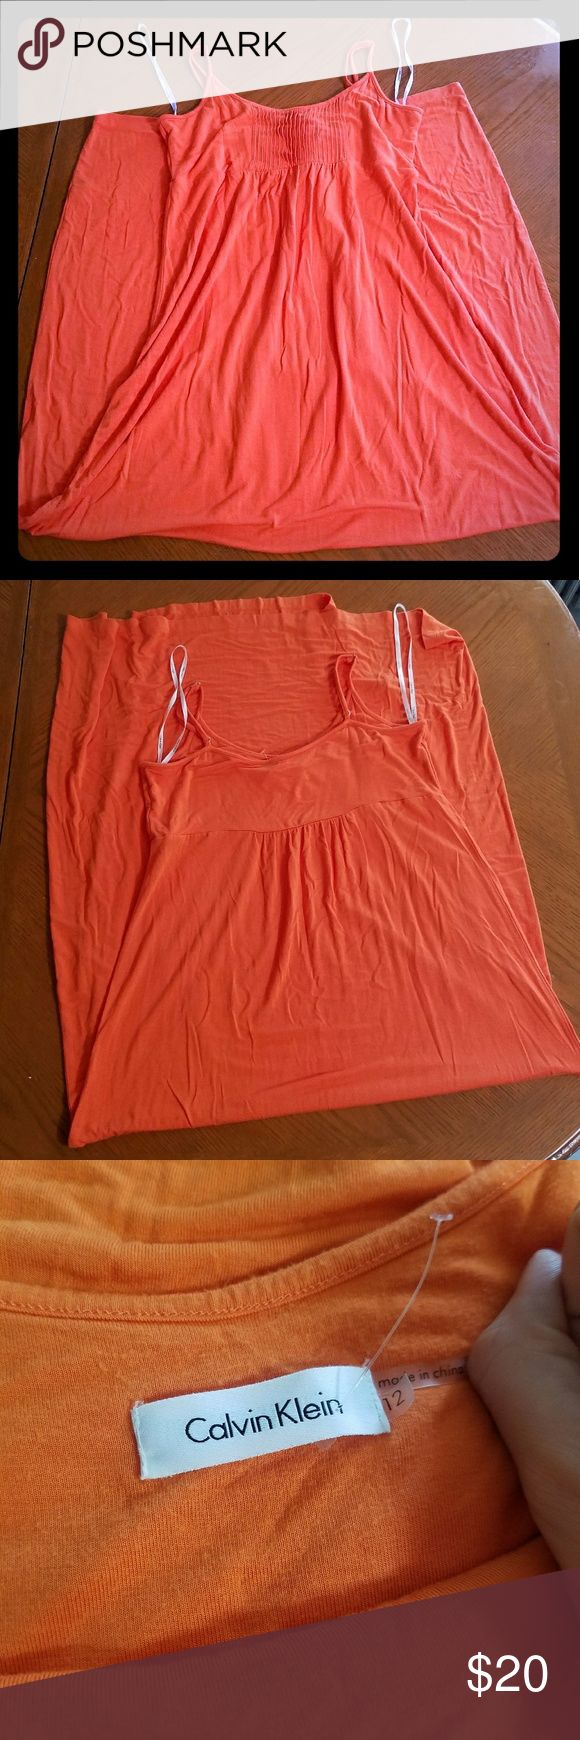 "Calvin Klein Orange Maxi Dress NWOT Great orange color. Spaghetti straps with length adjusters. Size 12. NWOT.  Waist (right under bust) to hem  approximately 44.5""  Waist approximately 16.5"" Pictures don't do this dress justice...it is truly beautiful. Calvin Klein Dresses Maxi"